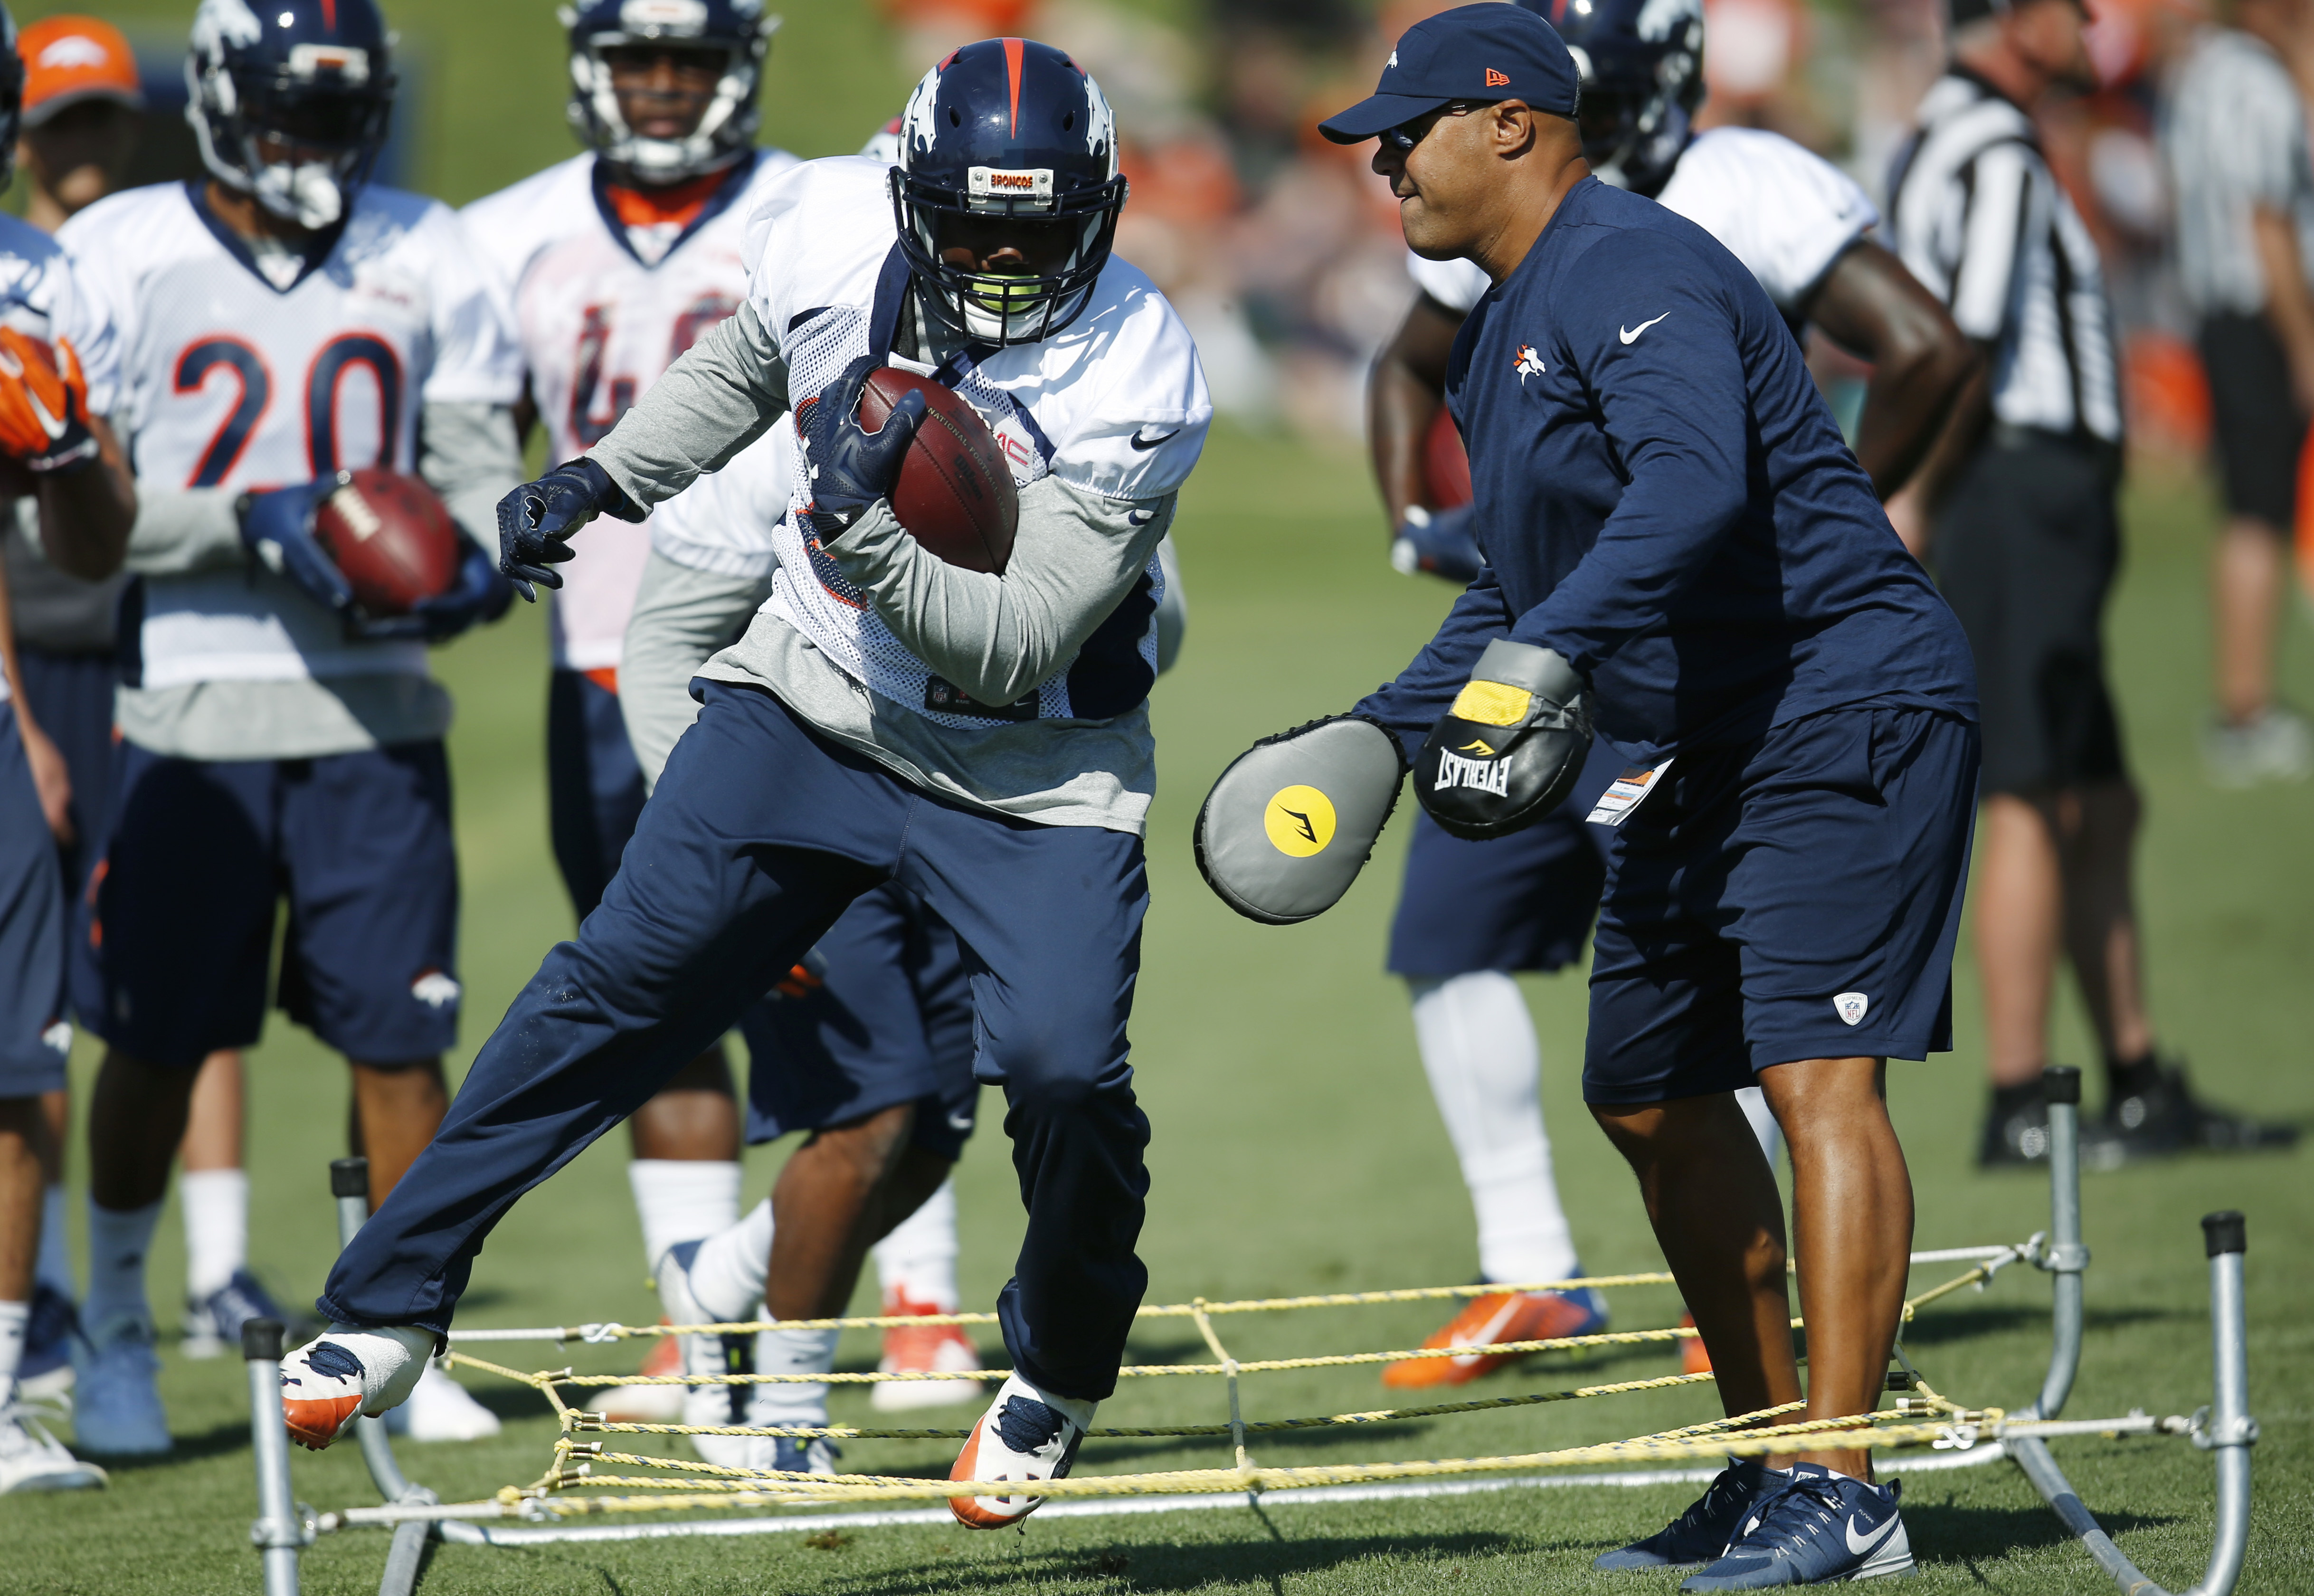 Denver Broncos running back C.J. Anderson, left, takes part in drills as running backs coach Eric Studesville applies pressure with a pair of boxing gloves during the team's opening session of training camp Thursday, July 28, 2016 in Englewood, Colo. (AP